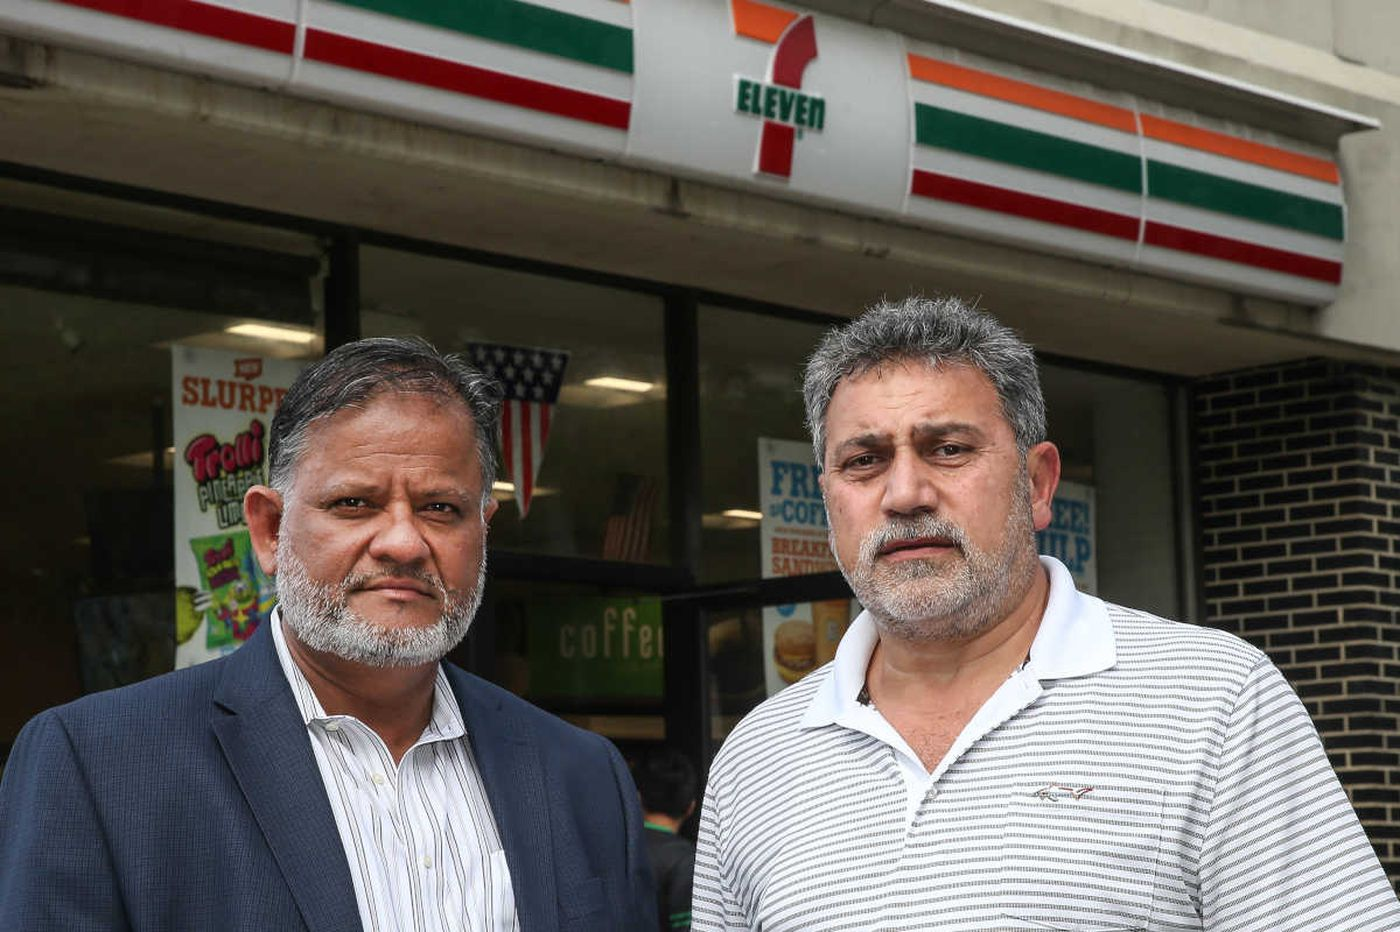 Inconvenience story: How Philly is attacking 7-Elevens